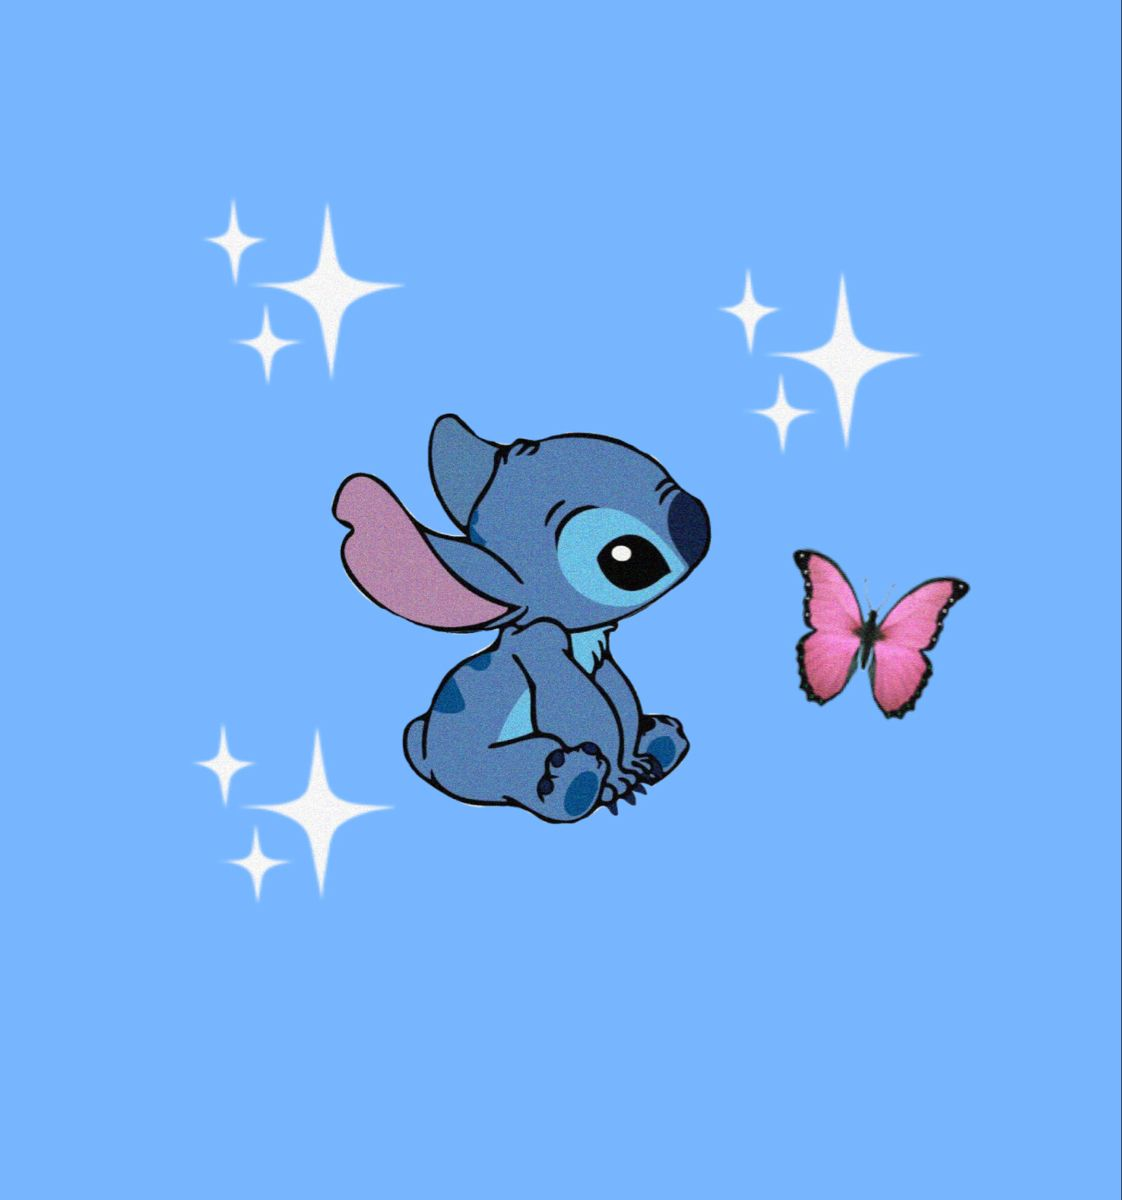 Aesthetic Profile Picture Aesthetic Wallpaper Cartoon Wallpaper Iphone Stitch Pictures Stitch Cartoon